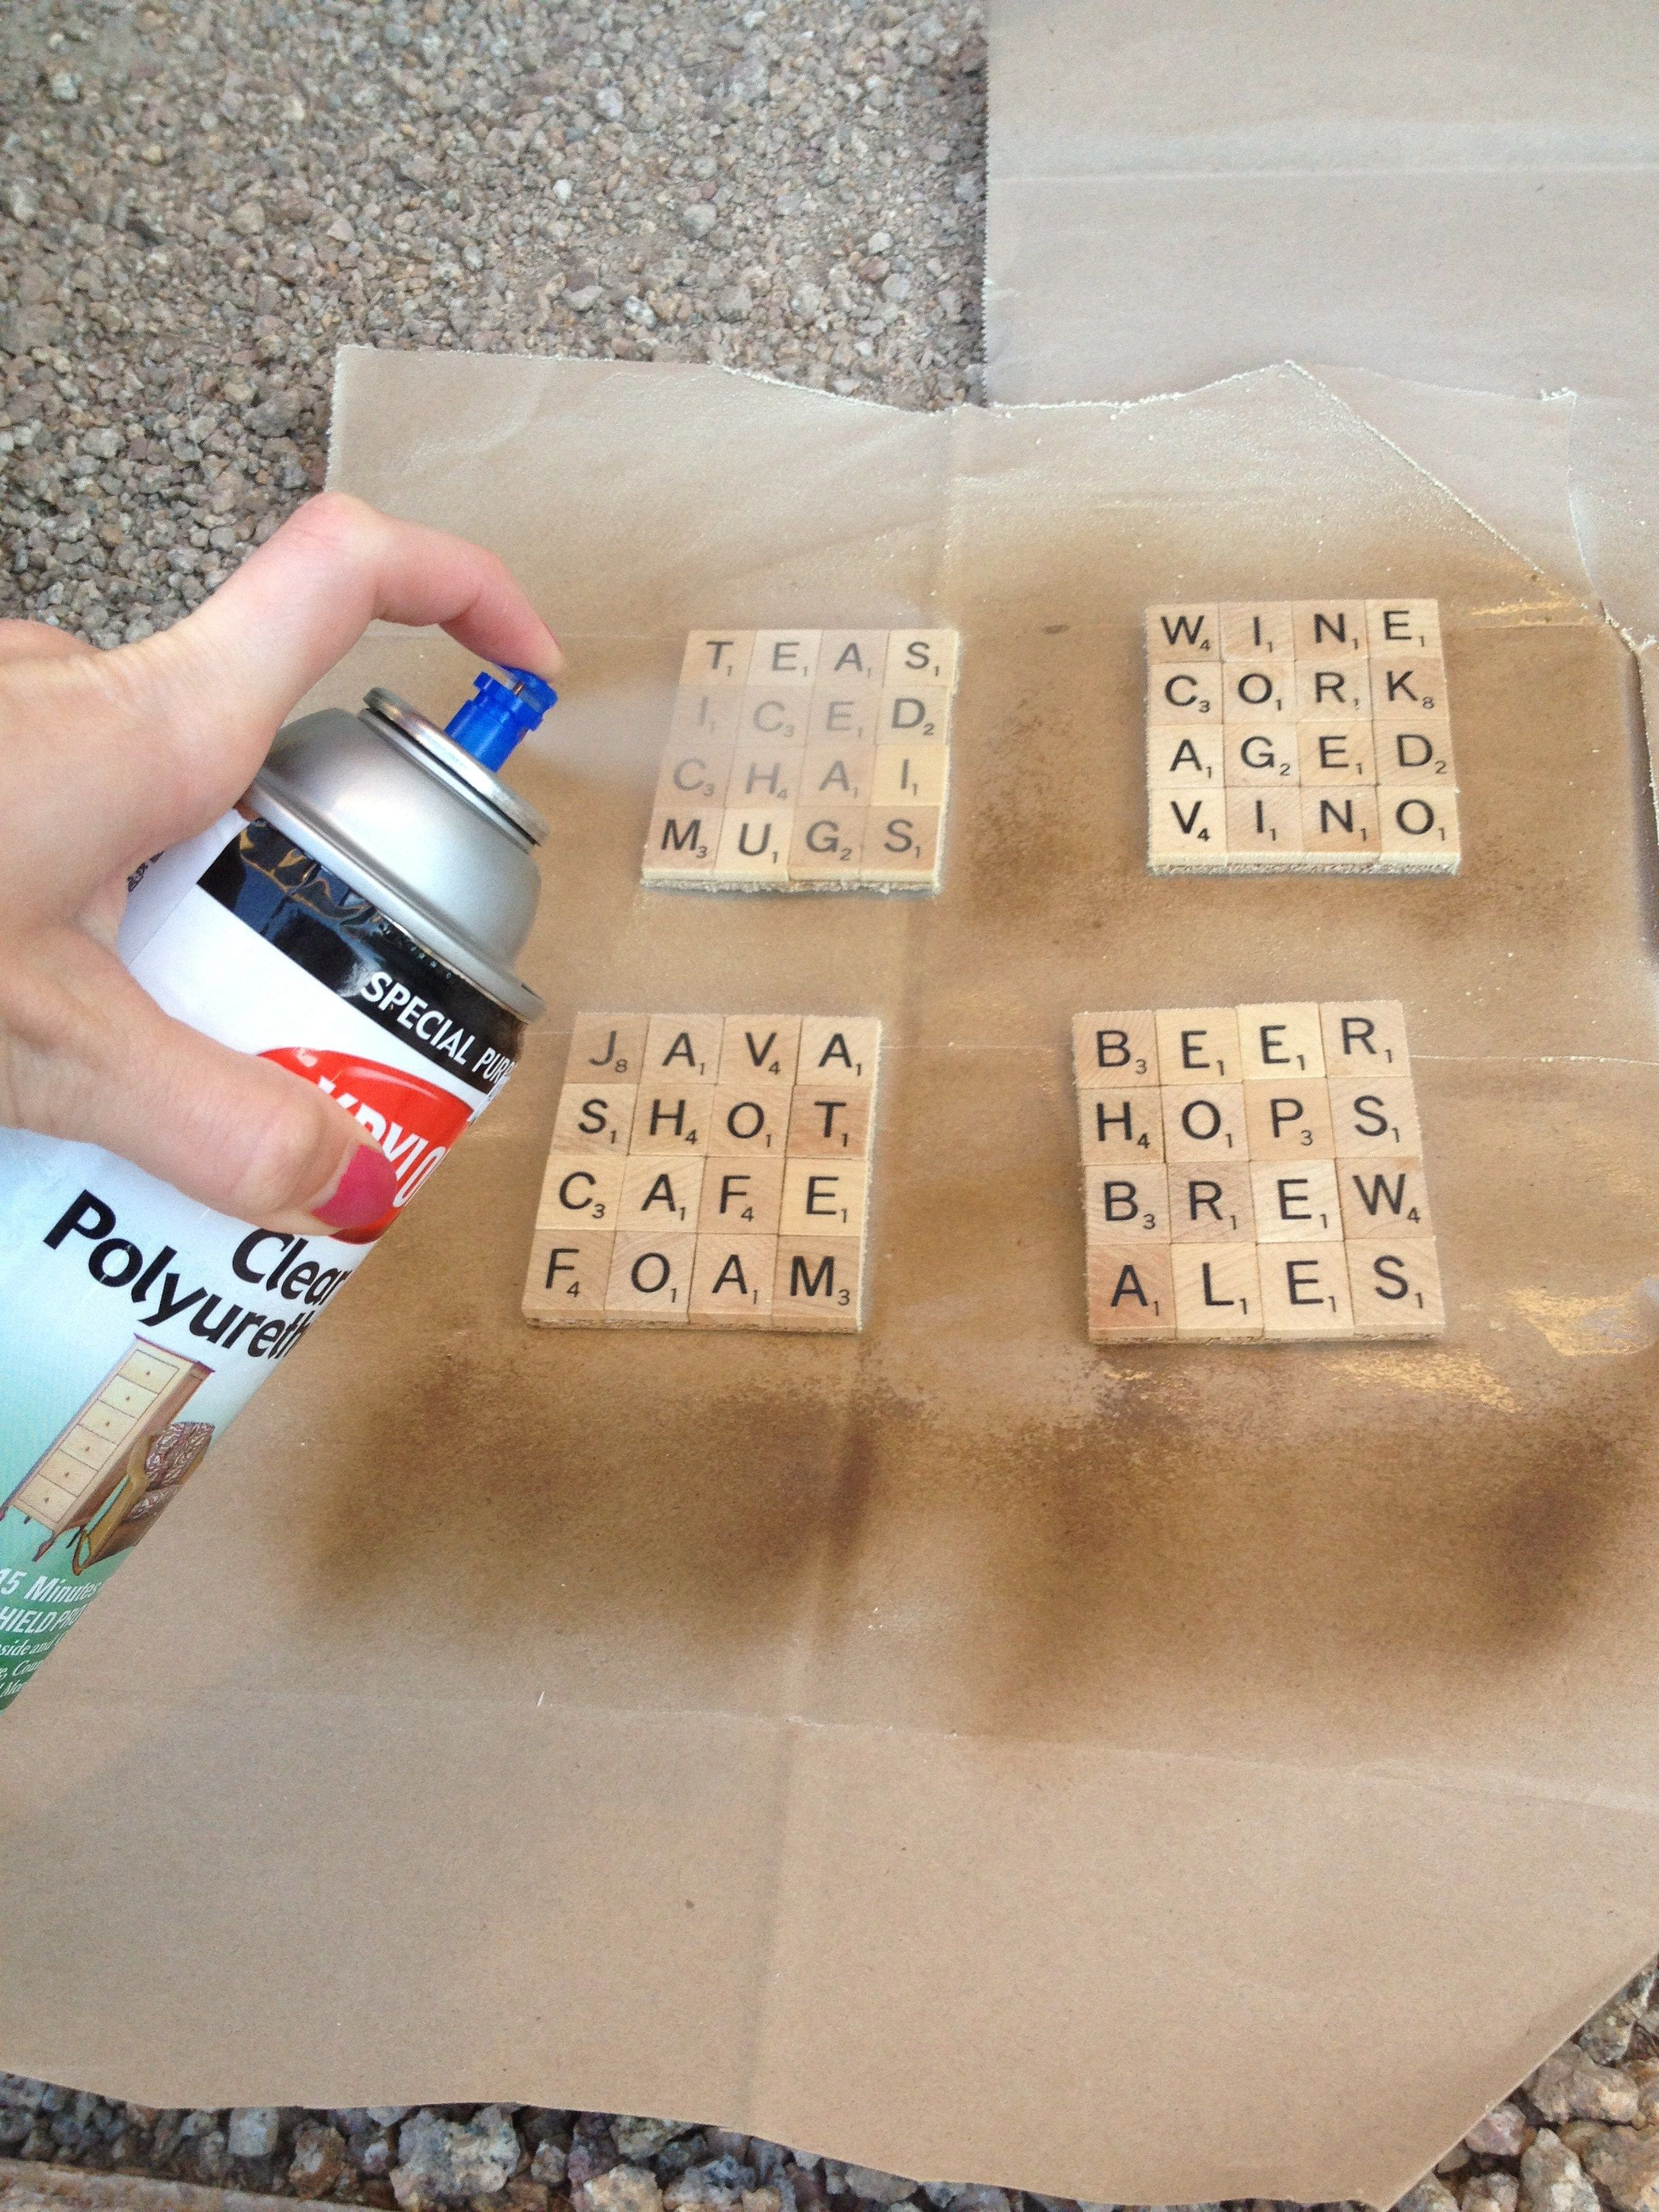 DIY Scrabble Coasters...java...shot...cafe...foam...teas...iced ...